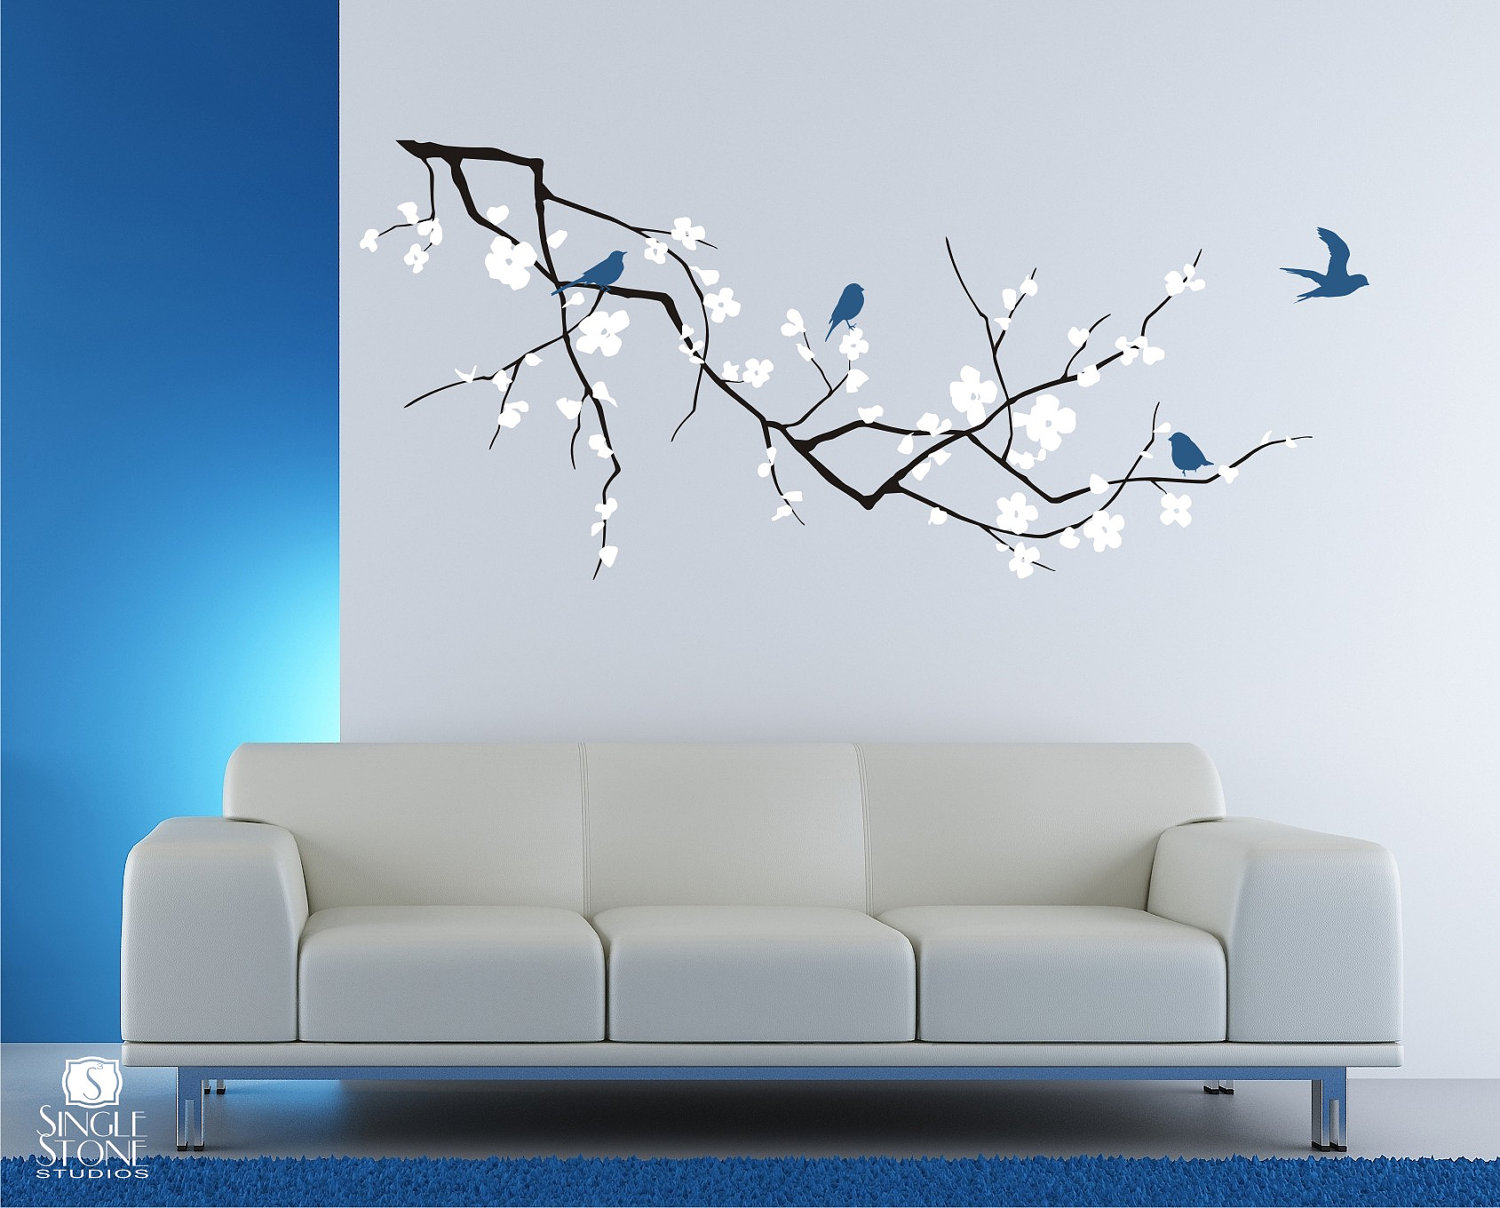 Vinyl Wall Decal 30 Best Wall Decals For Your Home